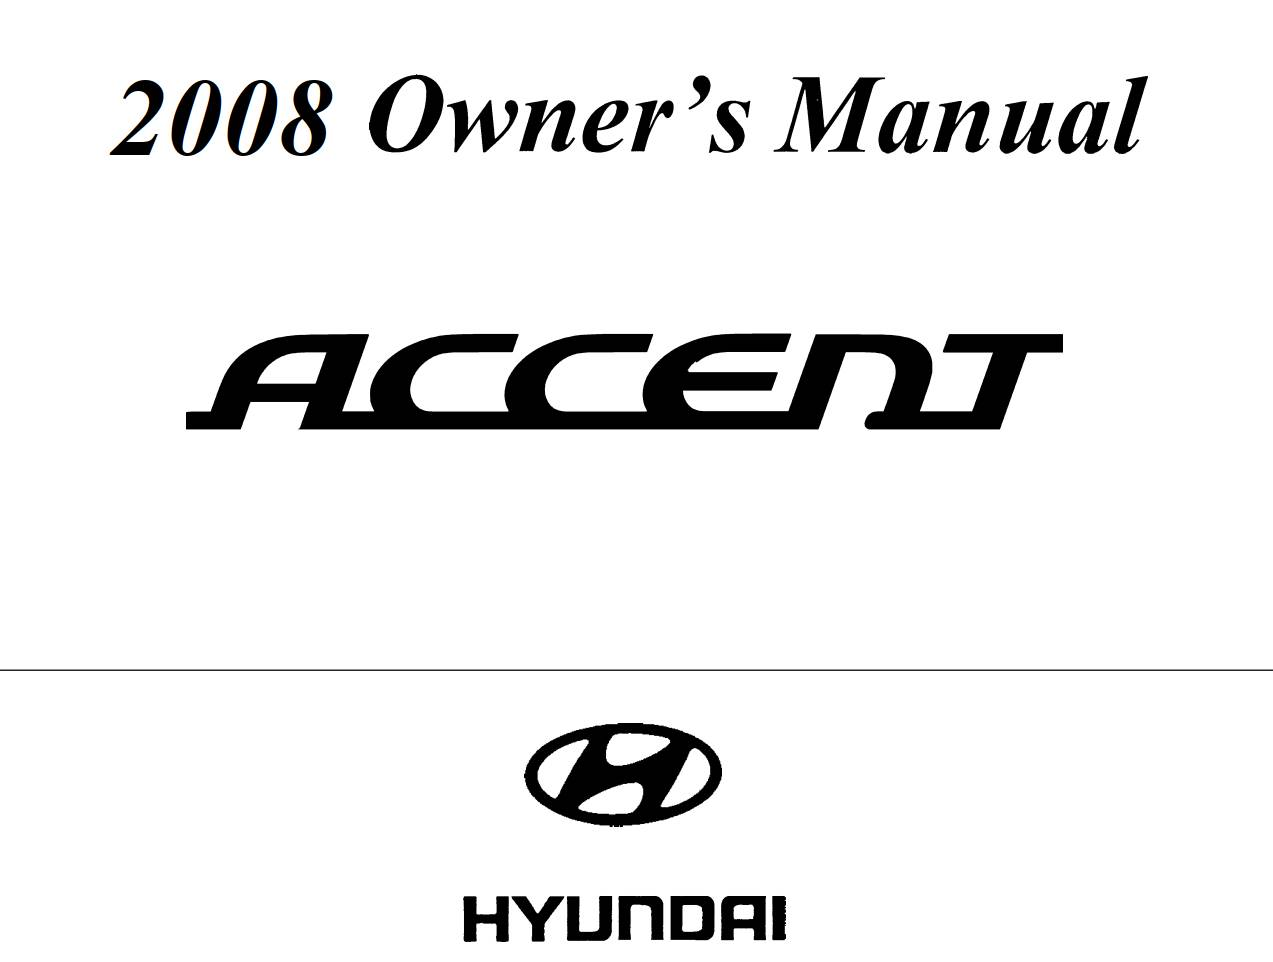 Hyundai Accent 2008 Owner's Manual